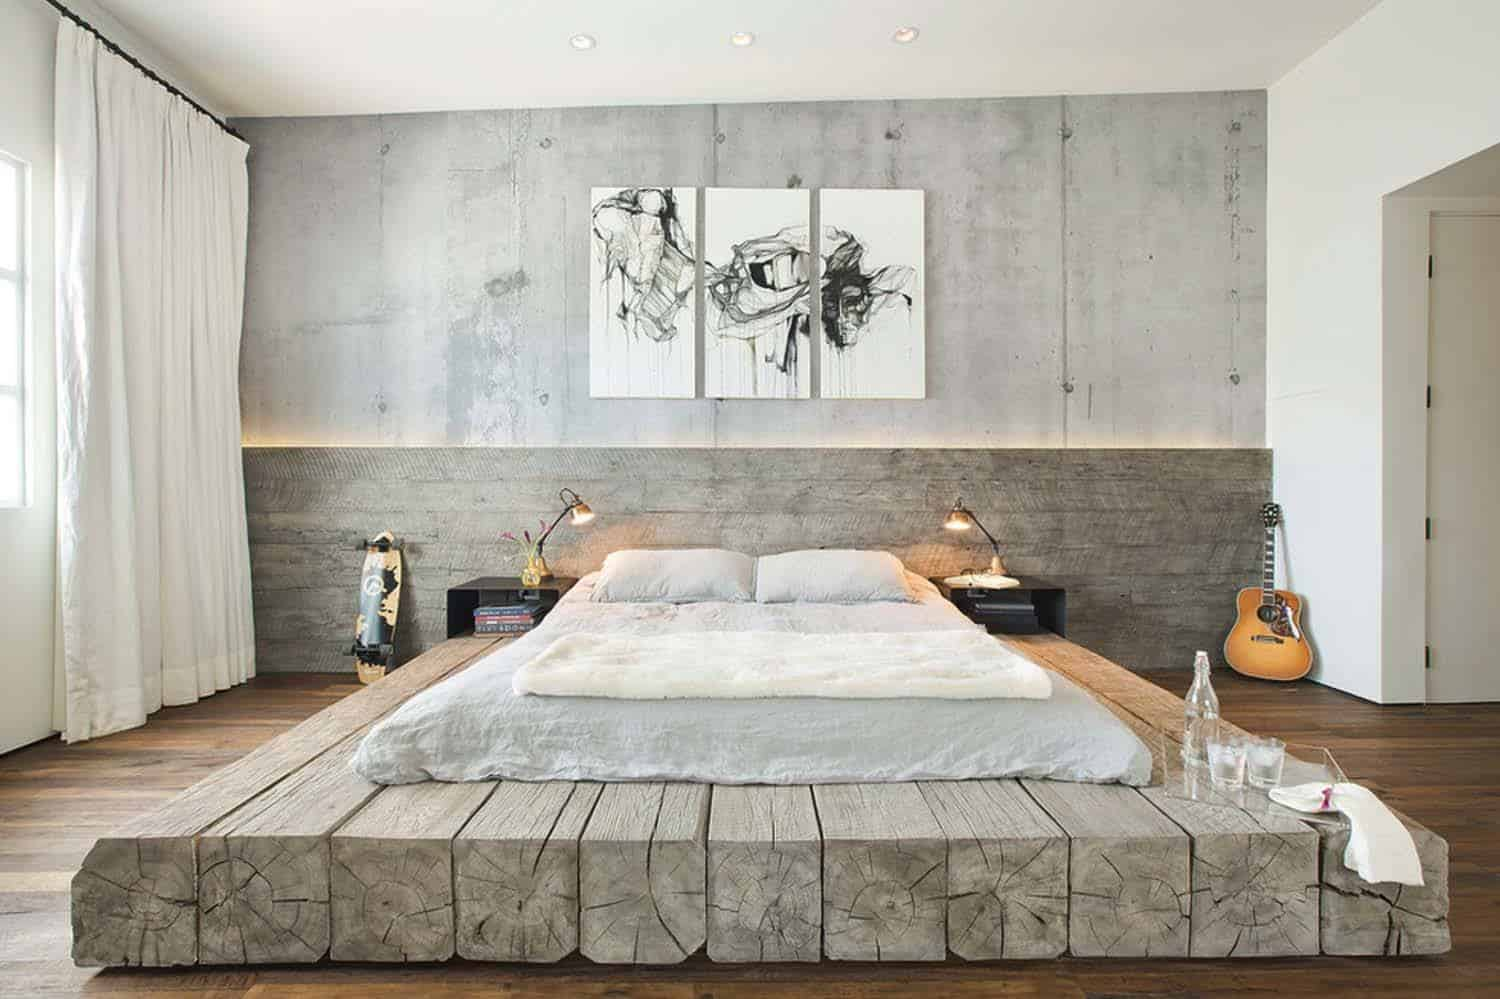 Bibdi50 Breathtaking Industrial Bedroom Design Ideas Today 2020 08 14 Download Here